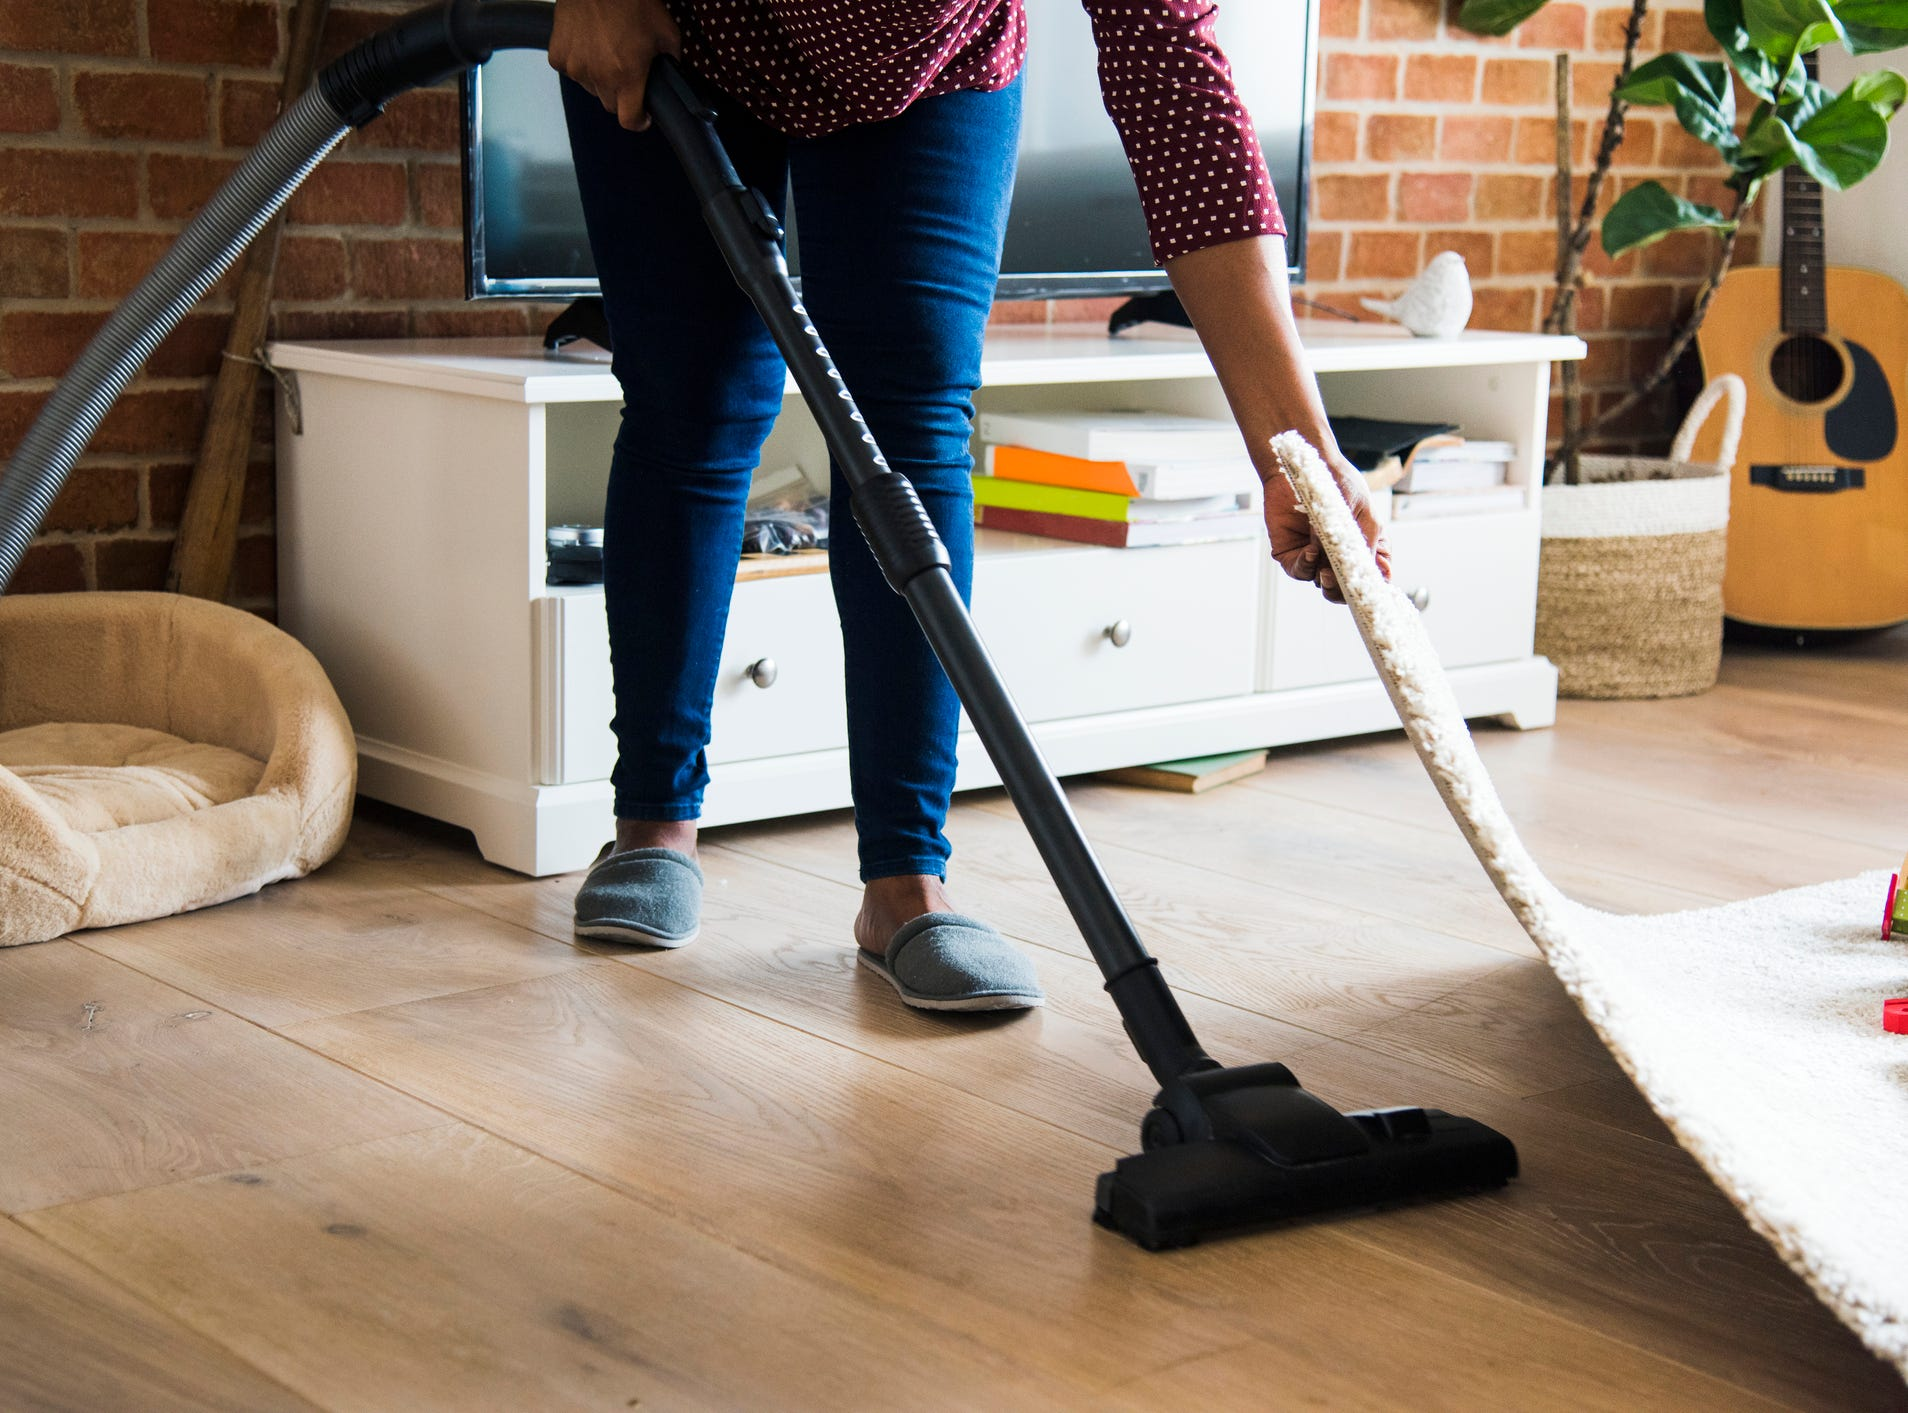 Autumn cleaning can prevent winter woes and serious health issues